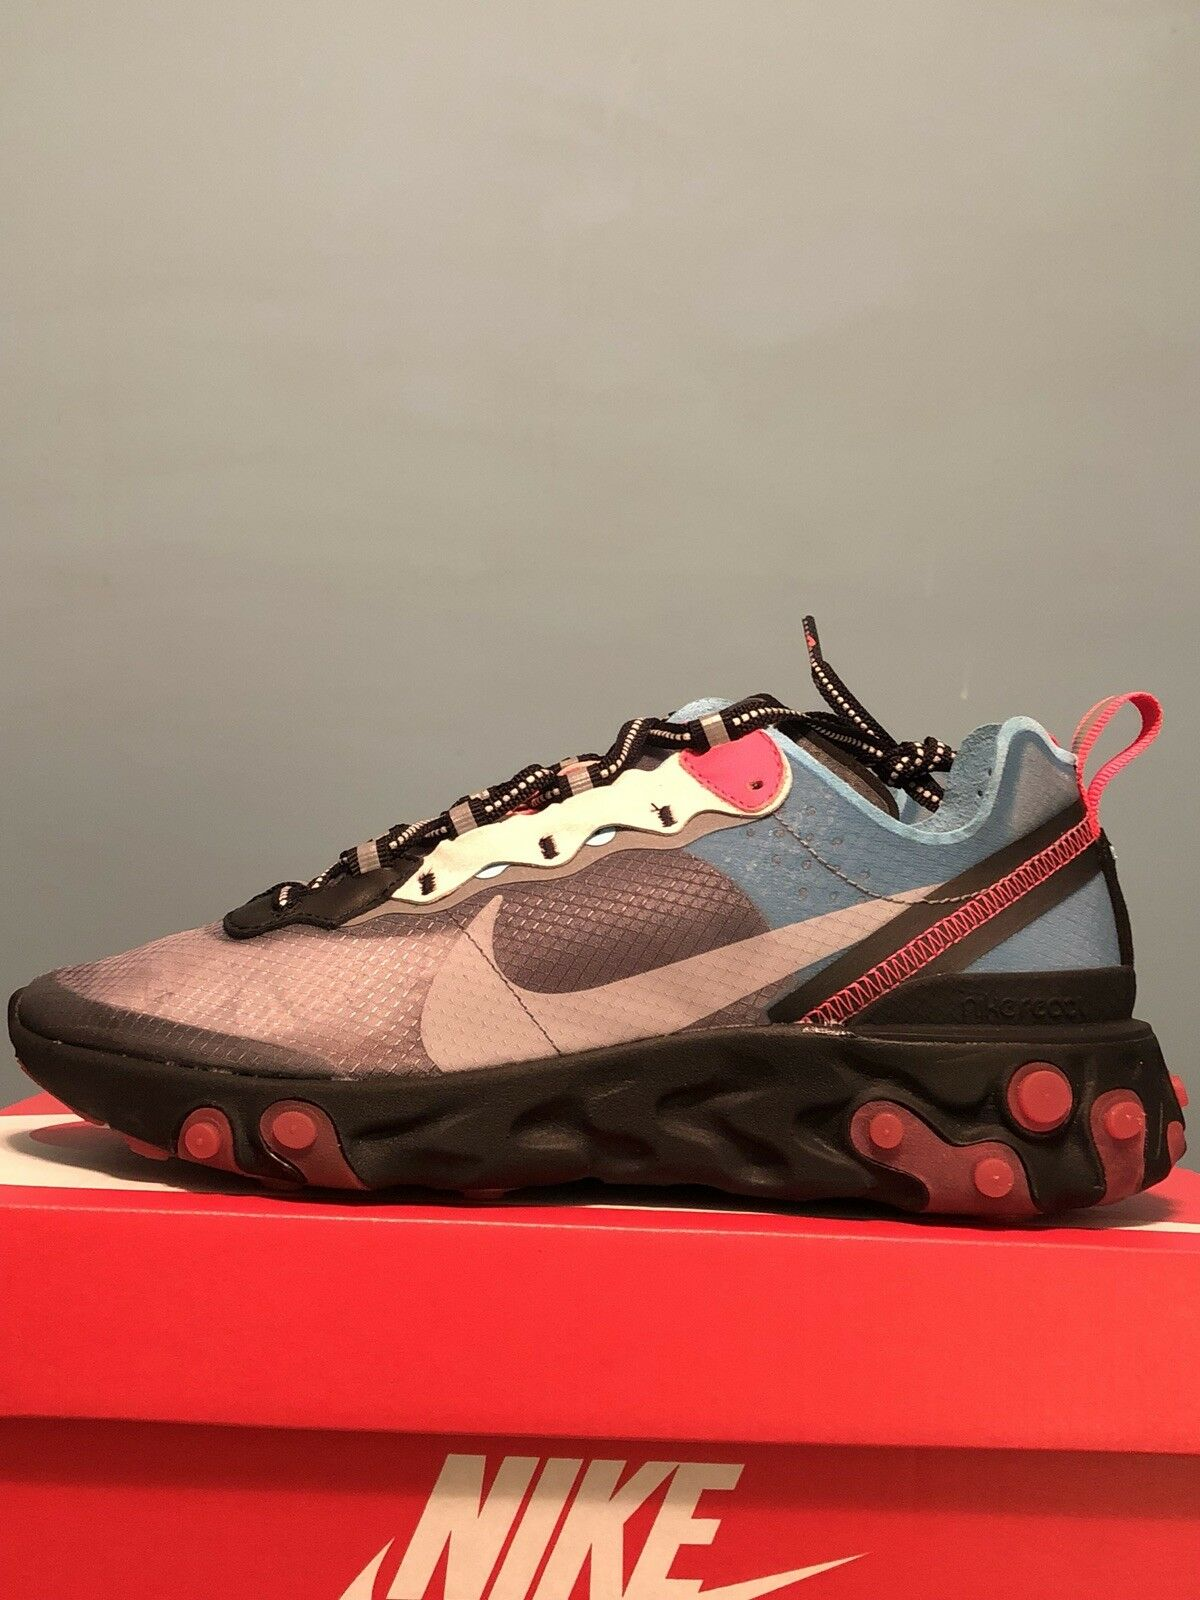 Nike 87 React React React Element 87 Nike Solar rosso DS Sz.7 78859e koenscraft  f6b95c